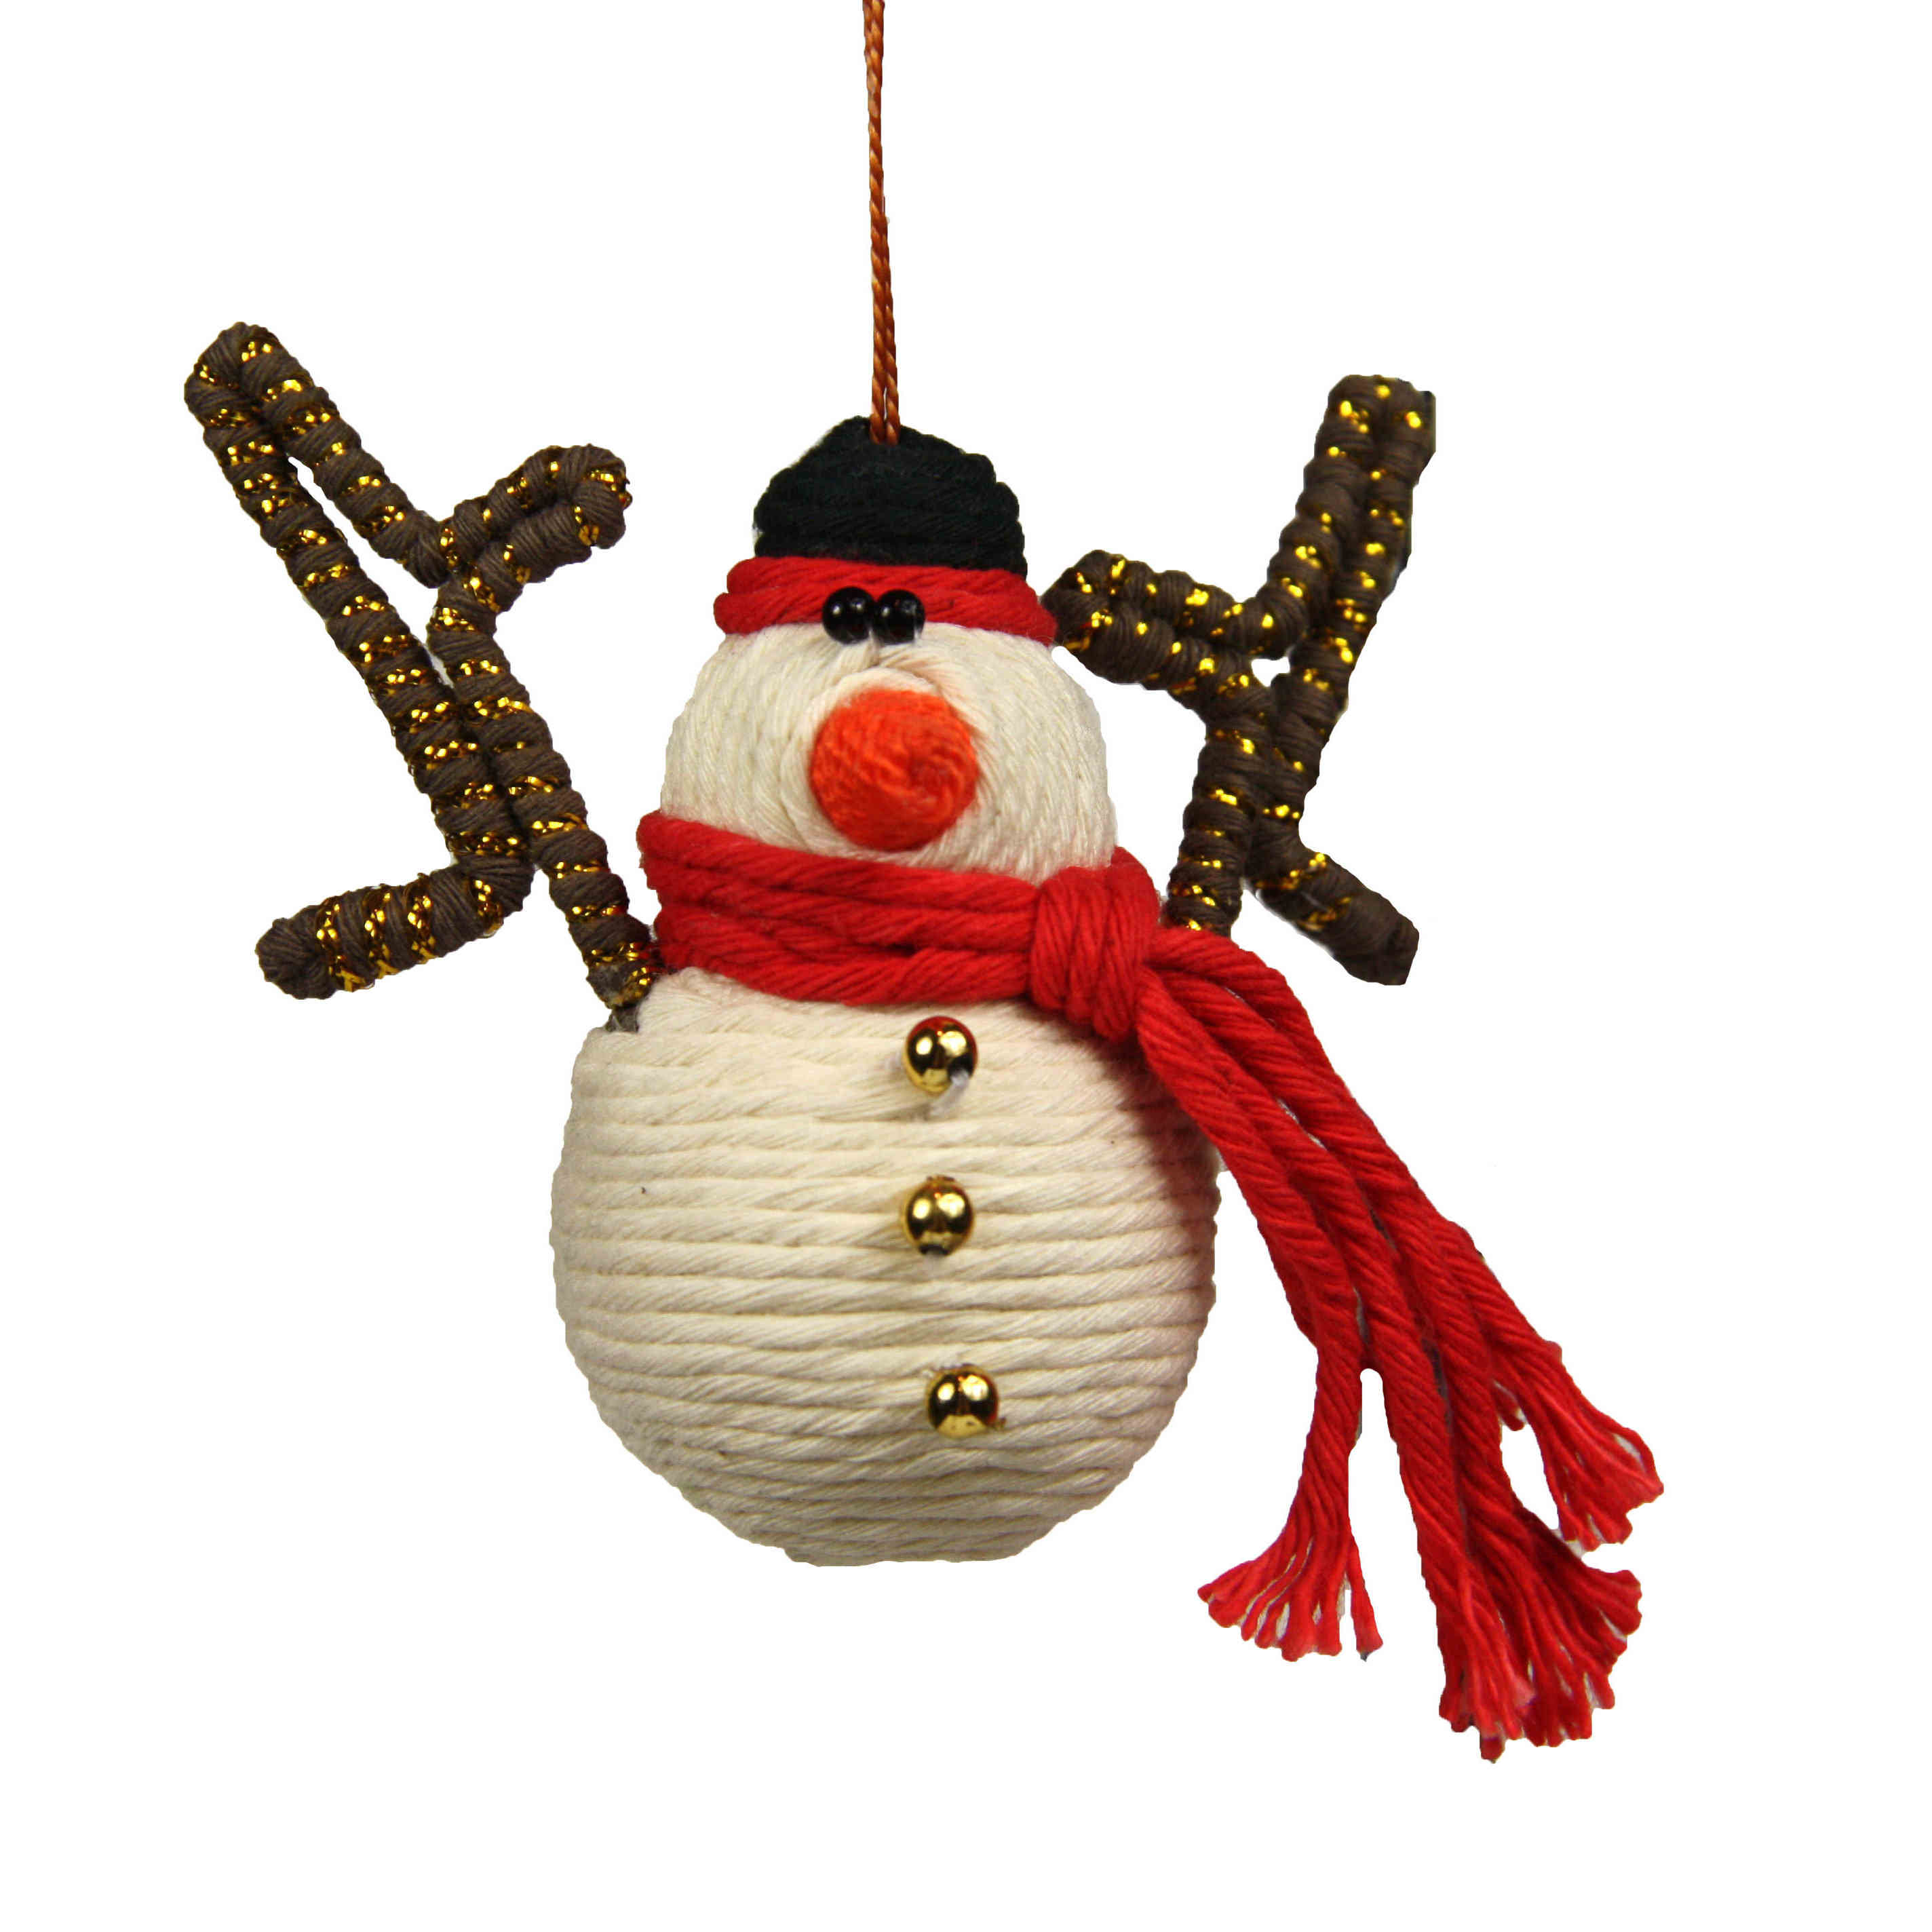 Cute Snowman Yarn Ornament